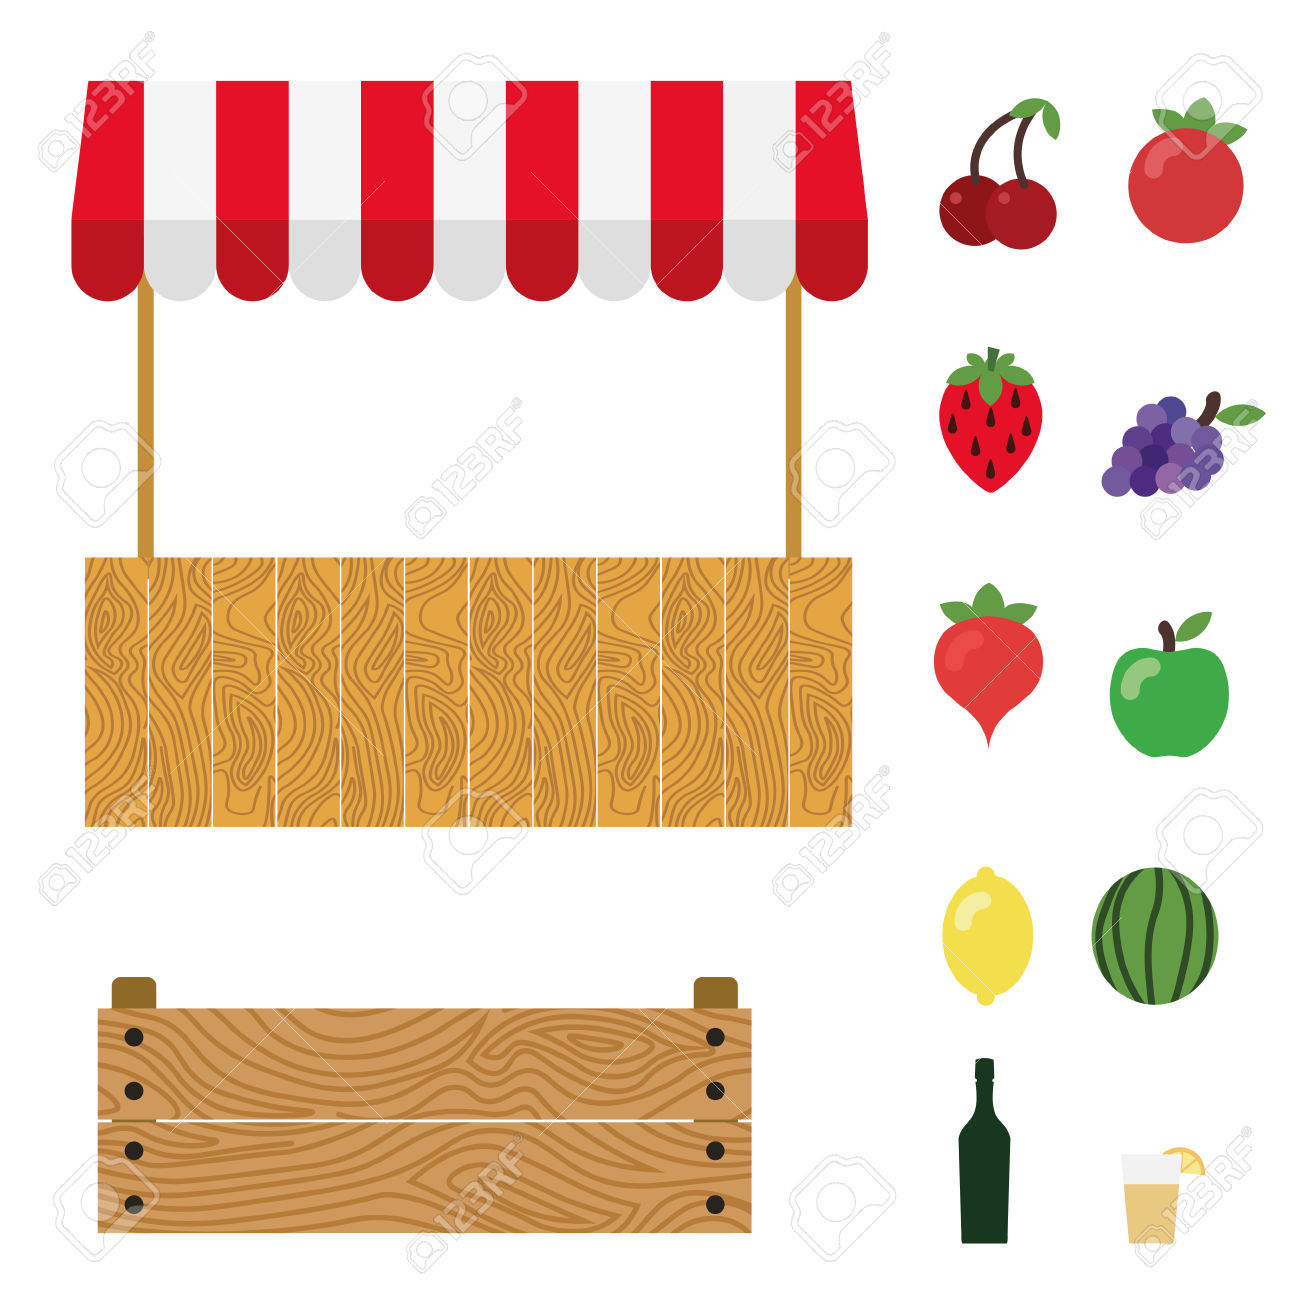 Market Tent With White And Red Striped. Market Stall, Wooden.